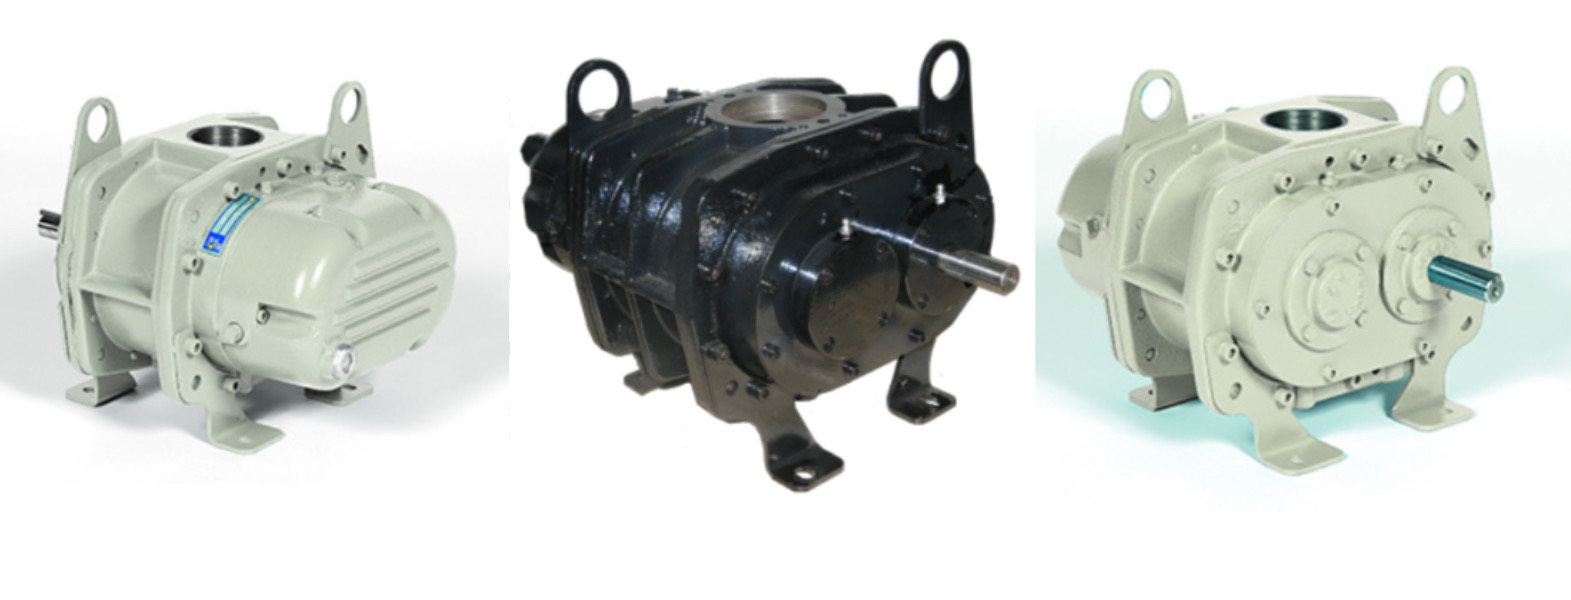 S2H Series Positive Displacement Blowers